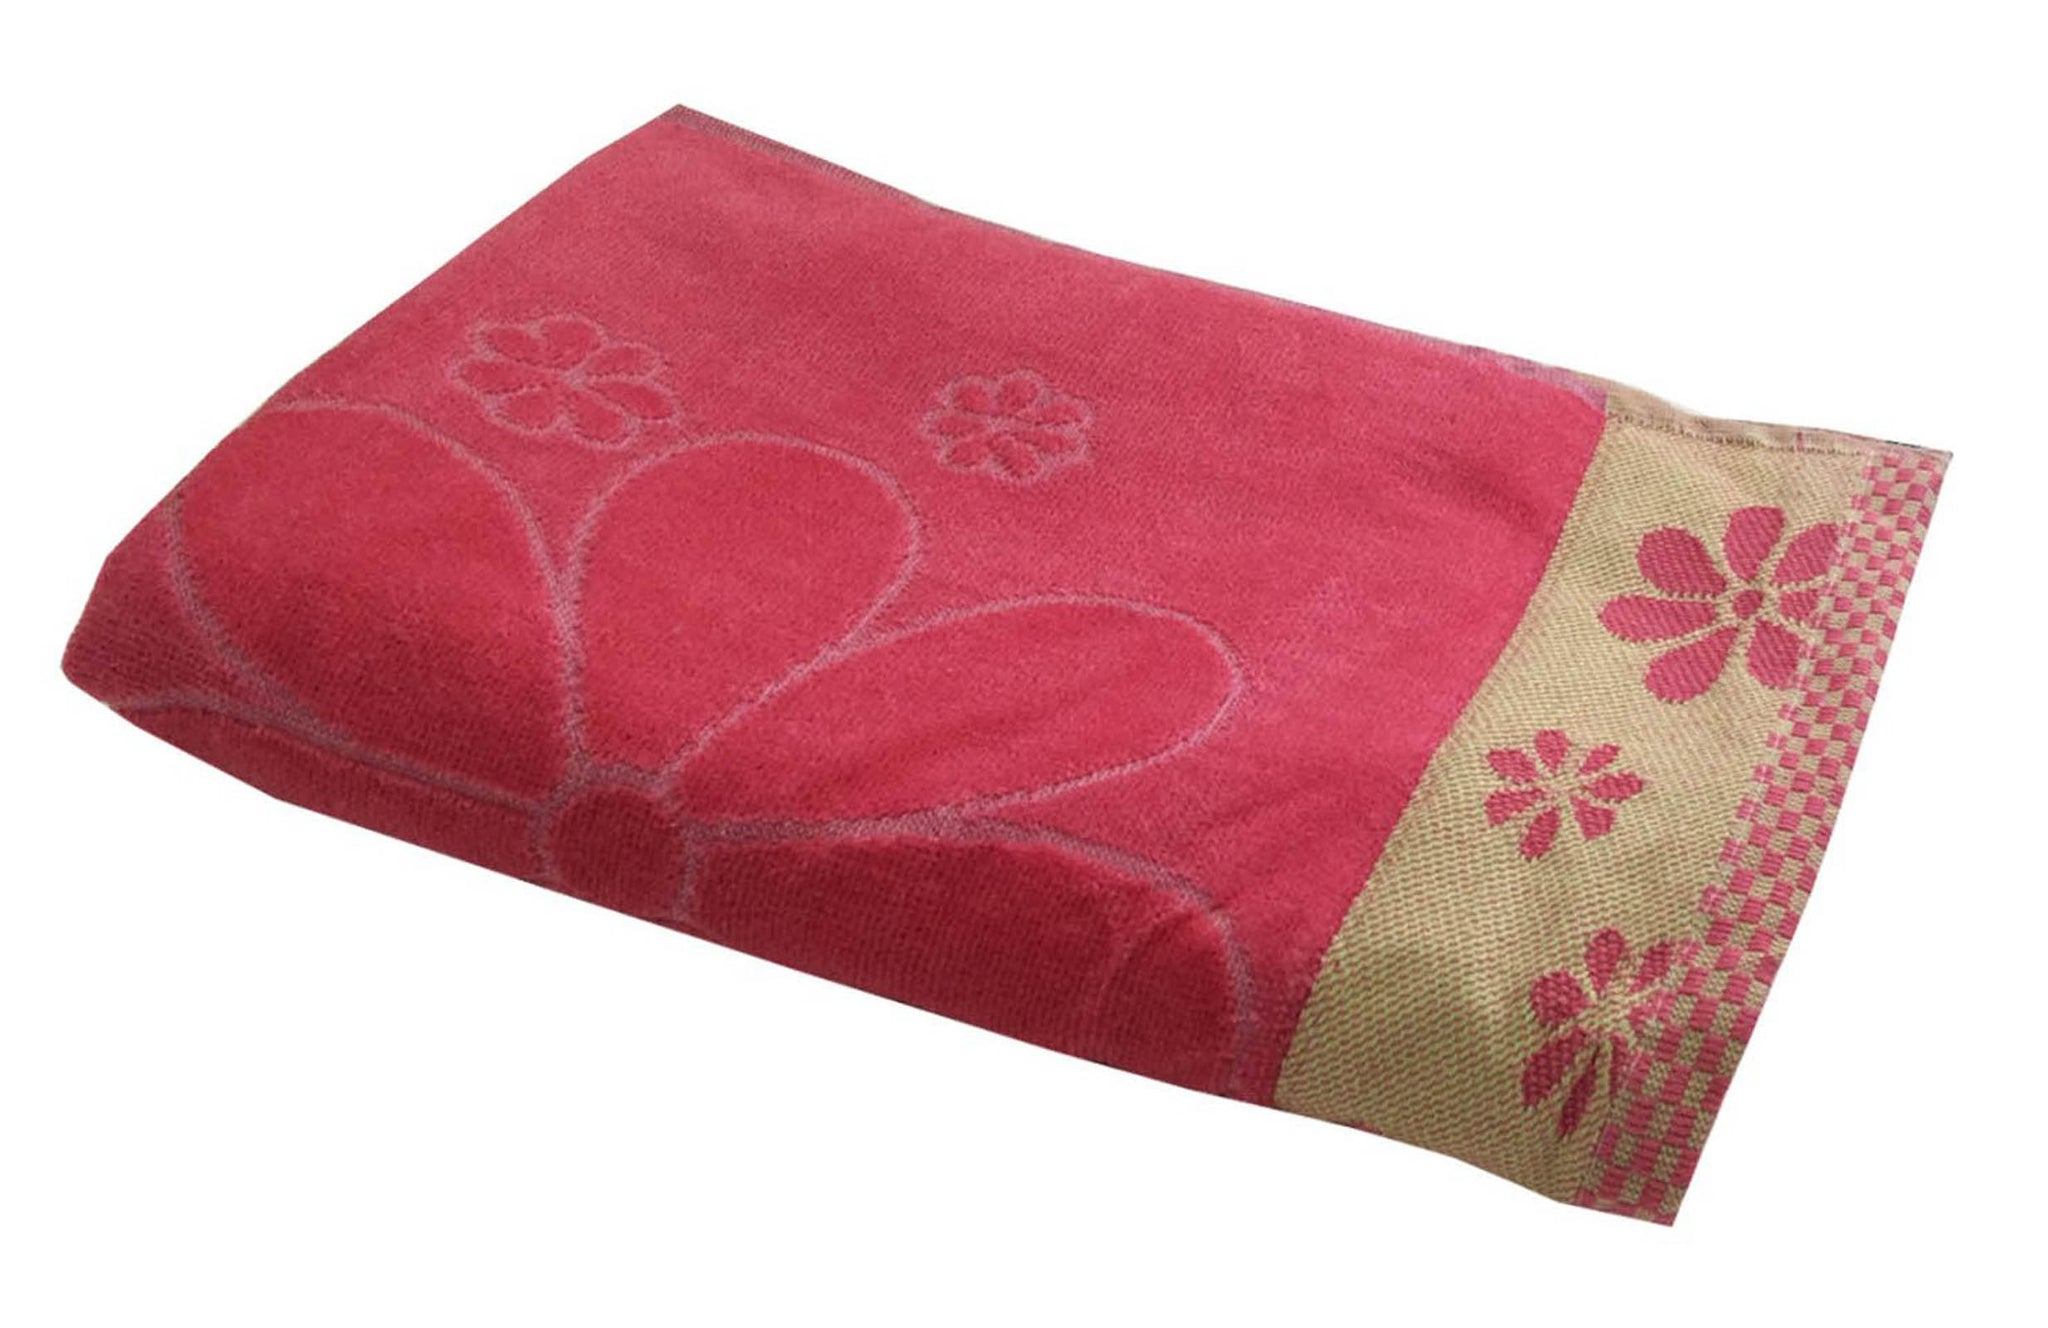 "Lushomes Pink Dove Sheered Absorbent Cotton Bath Towel with a Premium Border (28' x 58"" or 71 x 147 cms, single pc)"